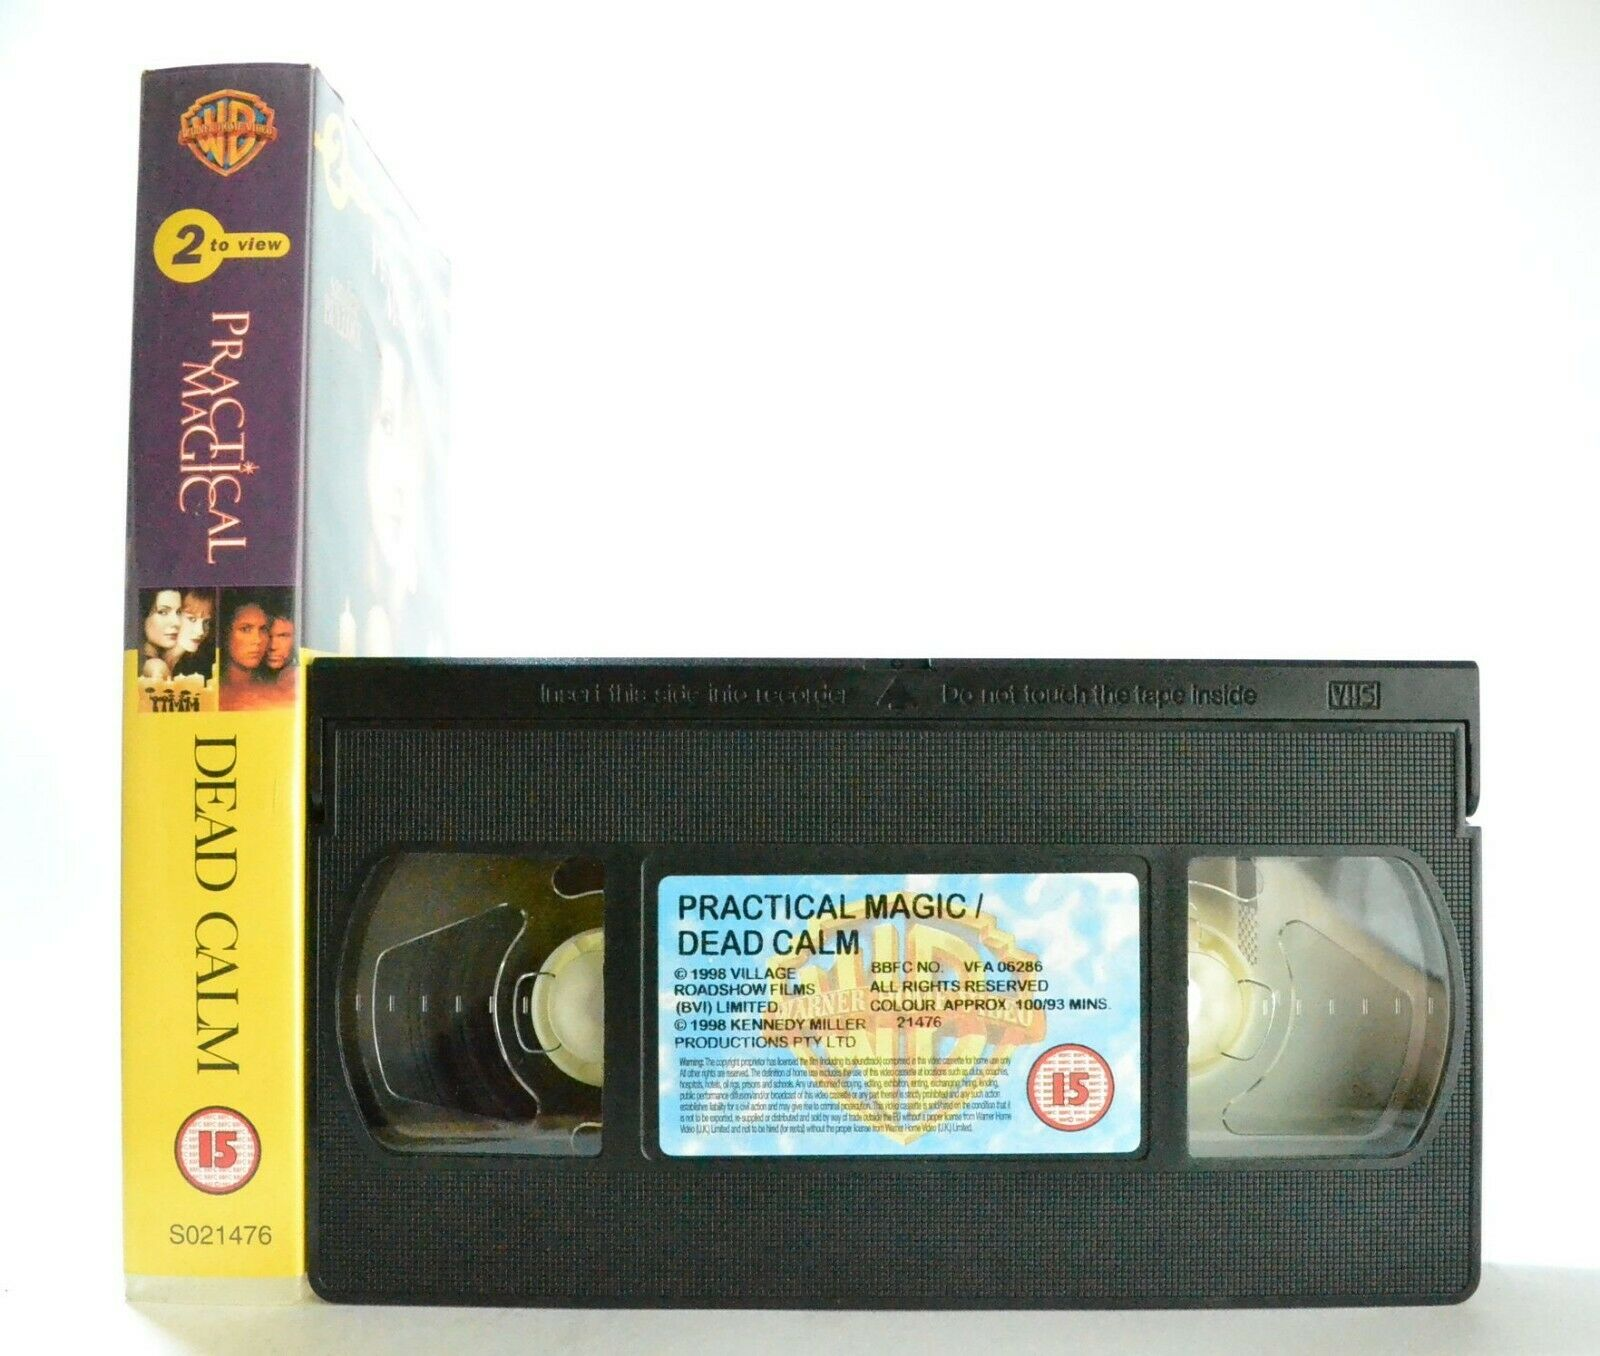 Practical Magic/Dead Calm: Warner (1998) - 2 To View - Nicole Kidman - Pal VHS